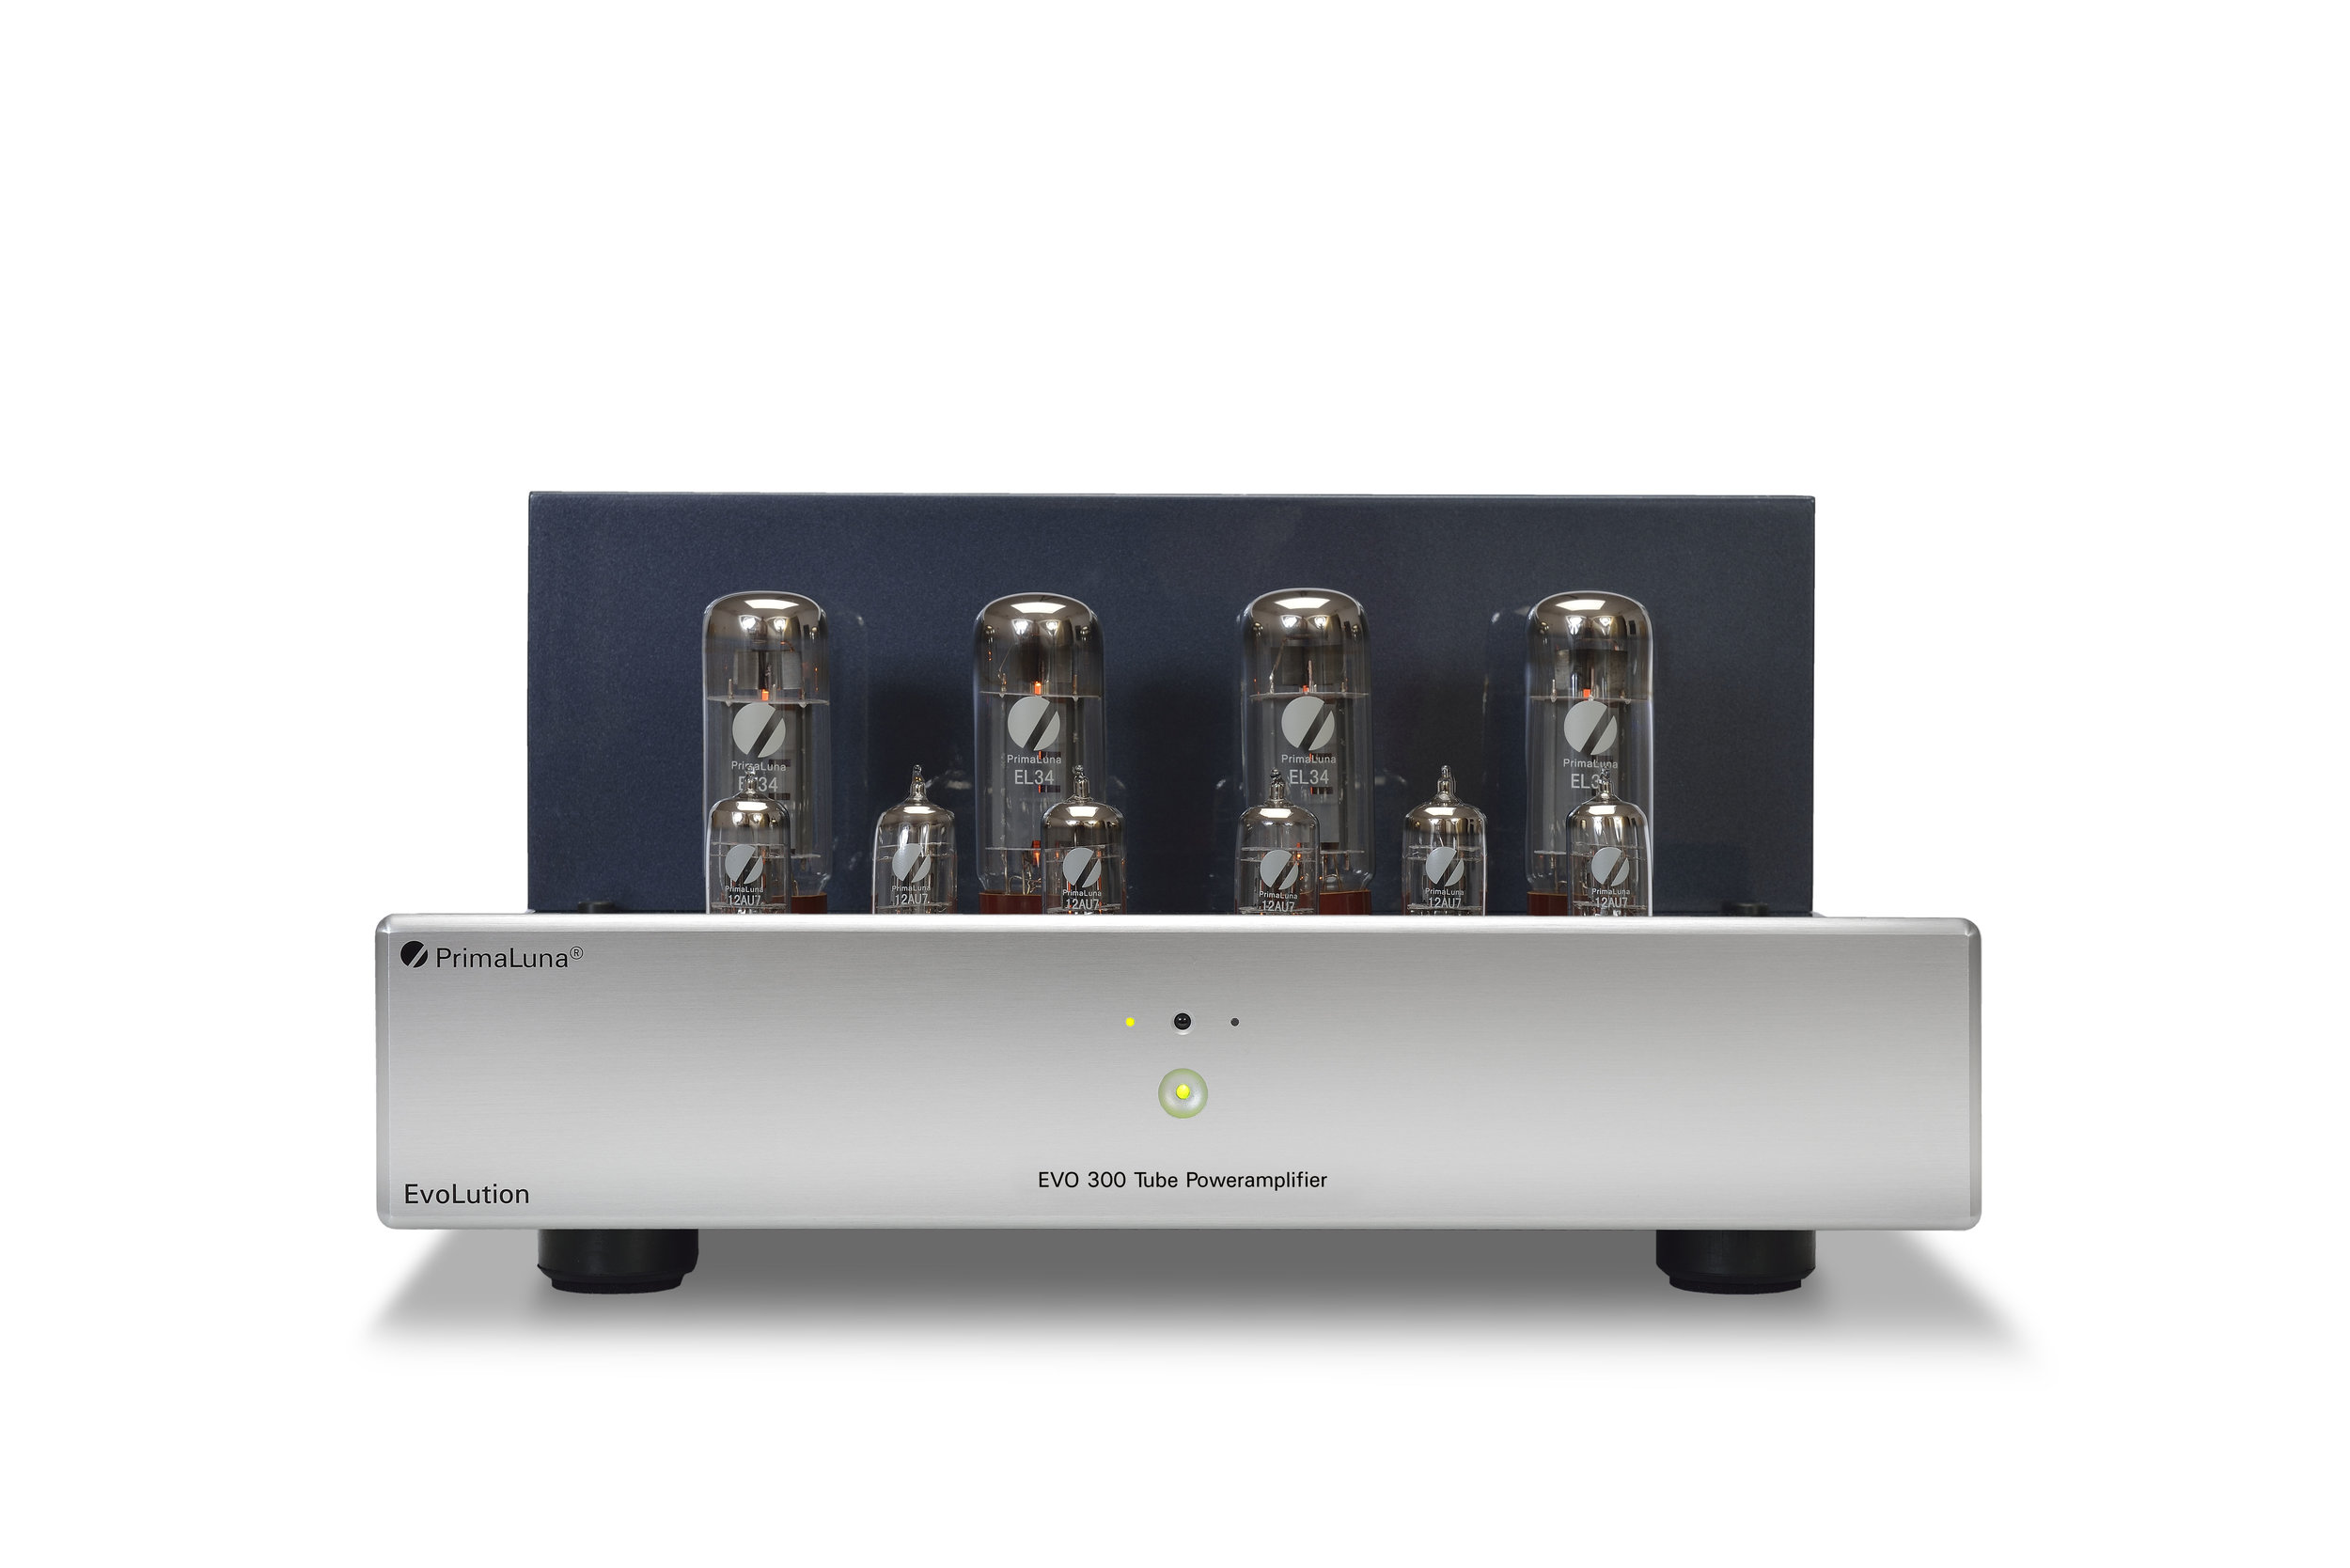 040b - PrimaLuna Evo 300 Tube Poweramplifier - silver - front low - white background.jpg